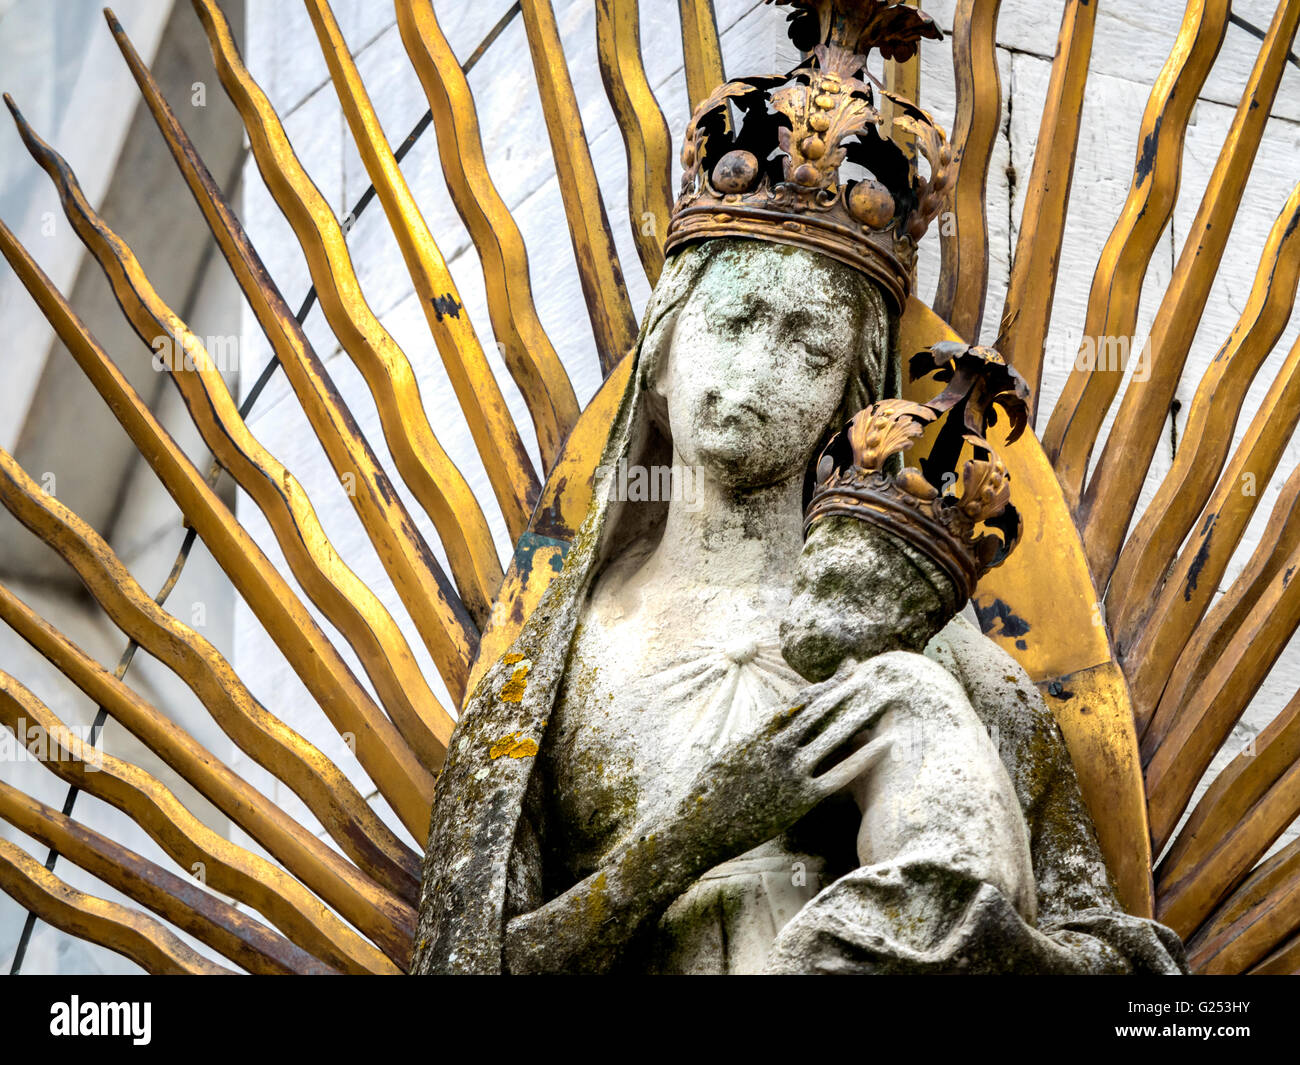 San Michele in Foro medieval church detail. Lucca, Tuscany, Italy - Stock Image